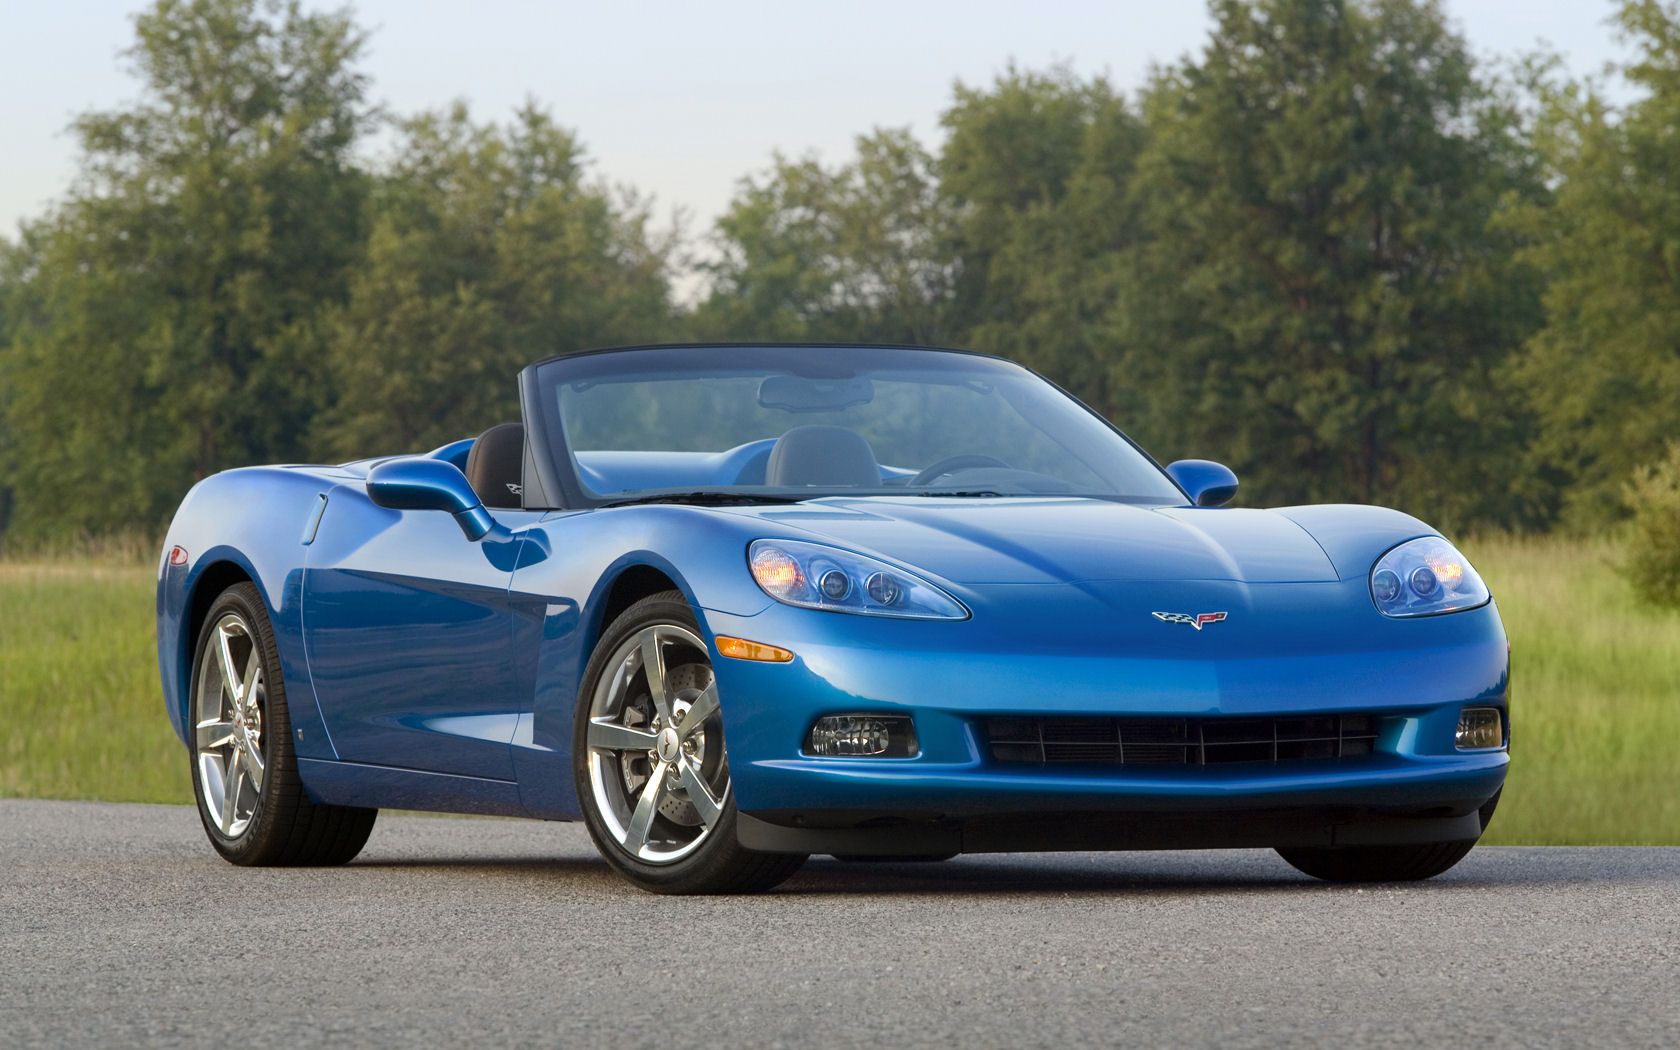 Corvette Wallpaper Widescreen - WallpaperSafari